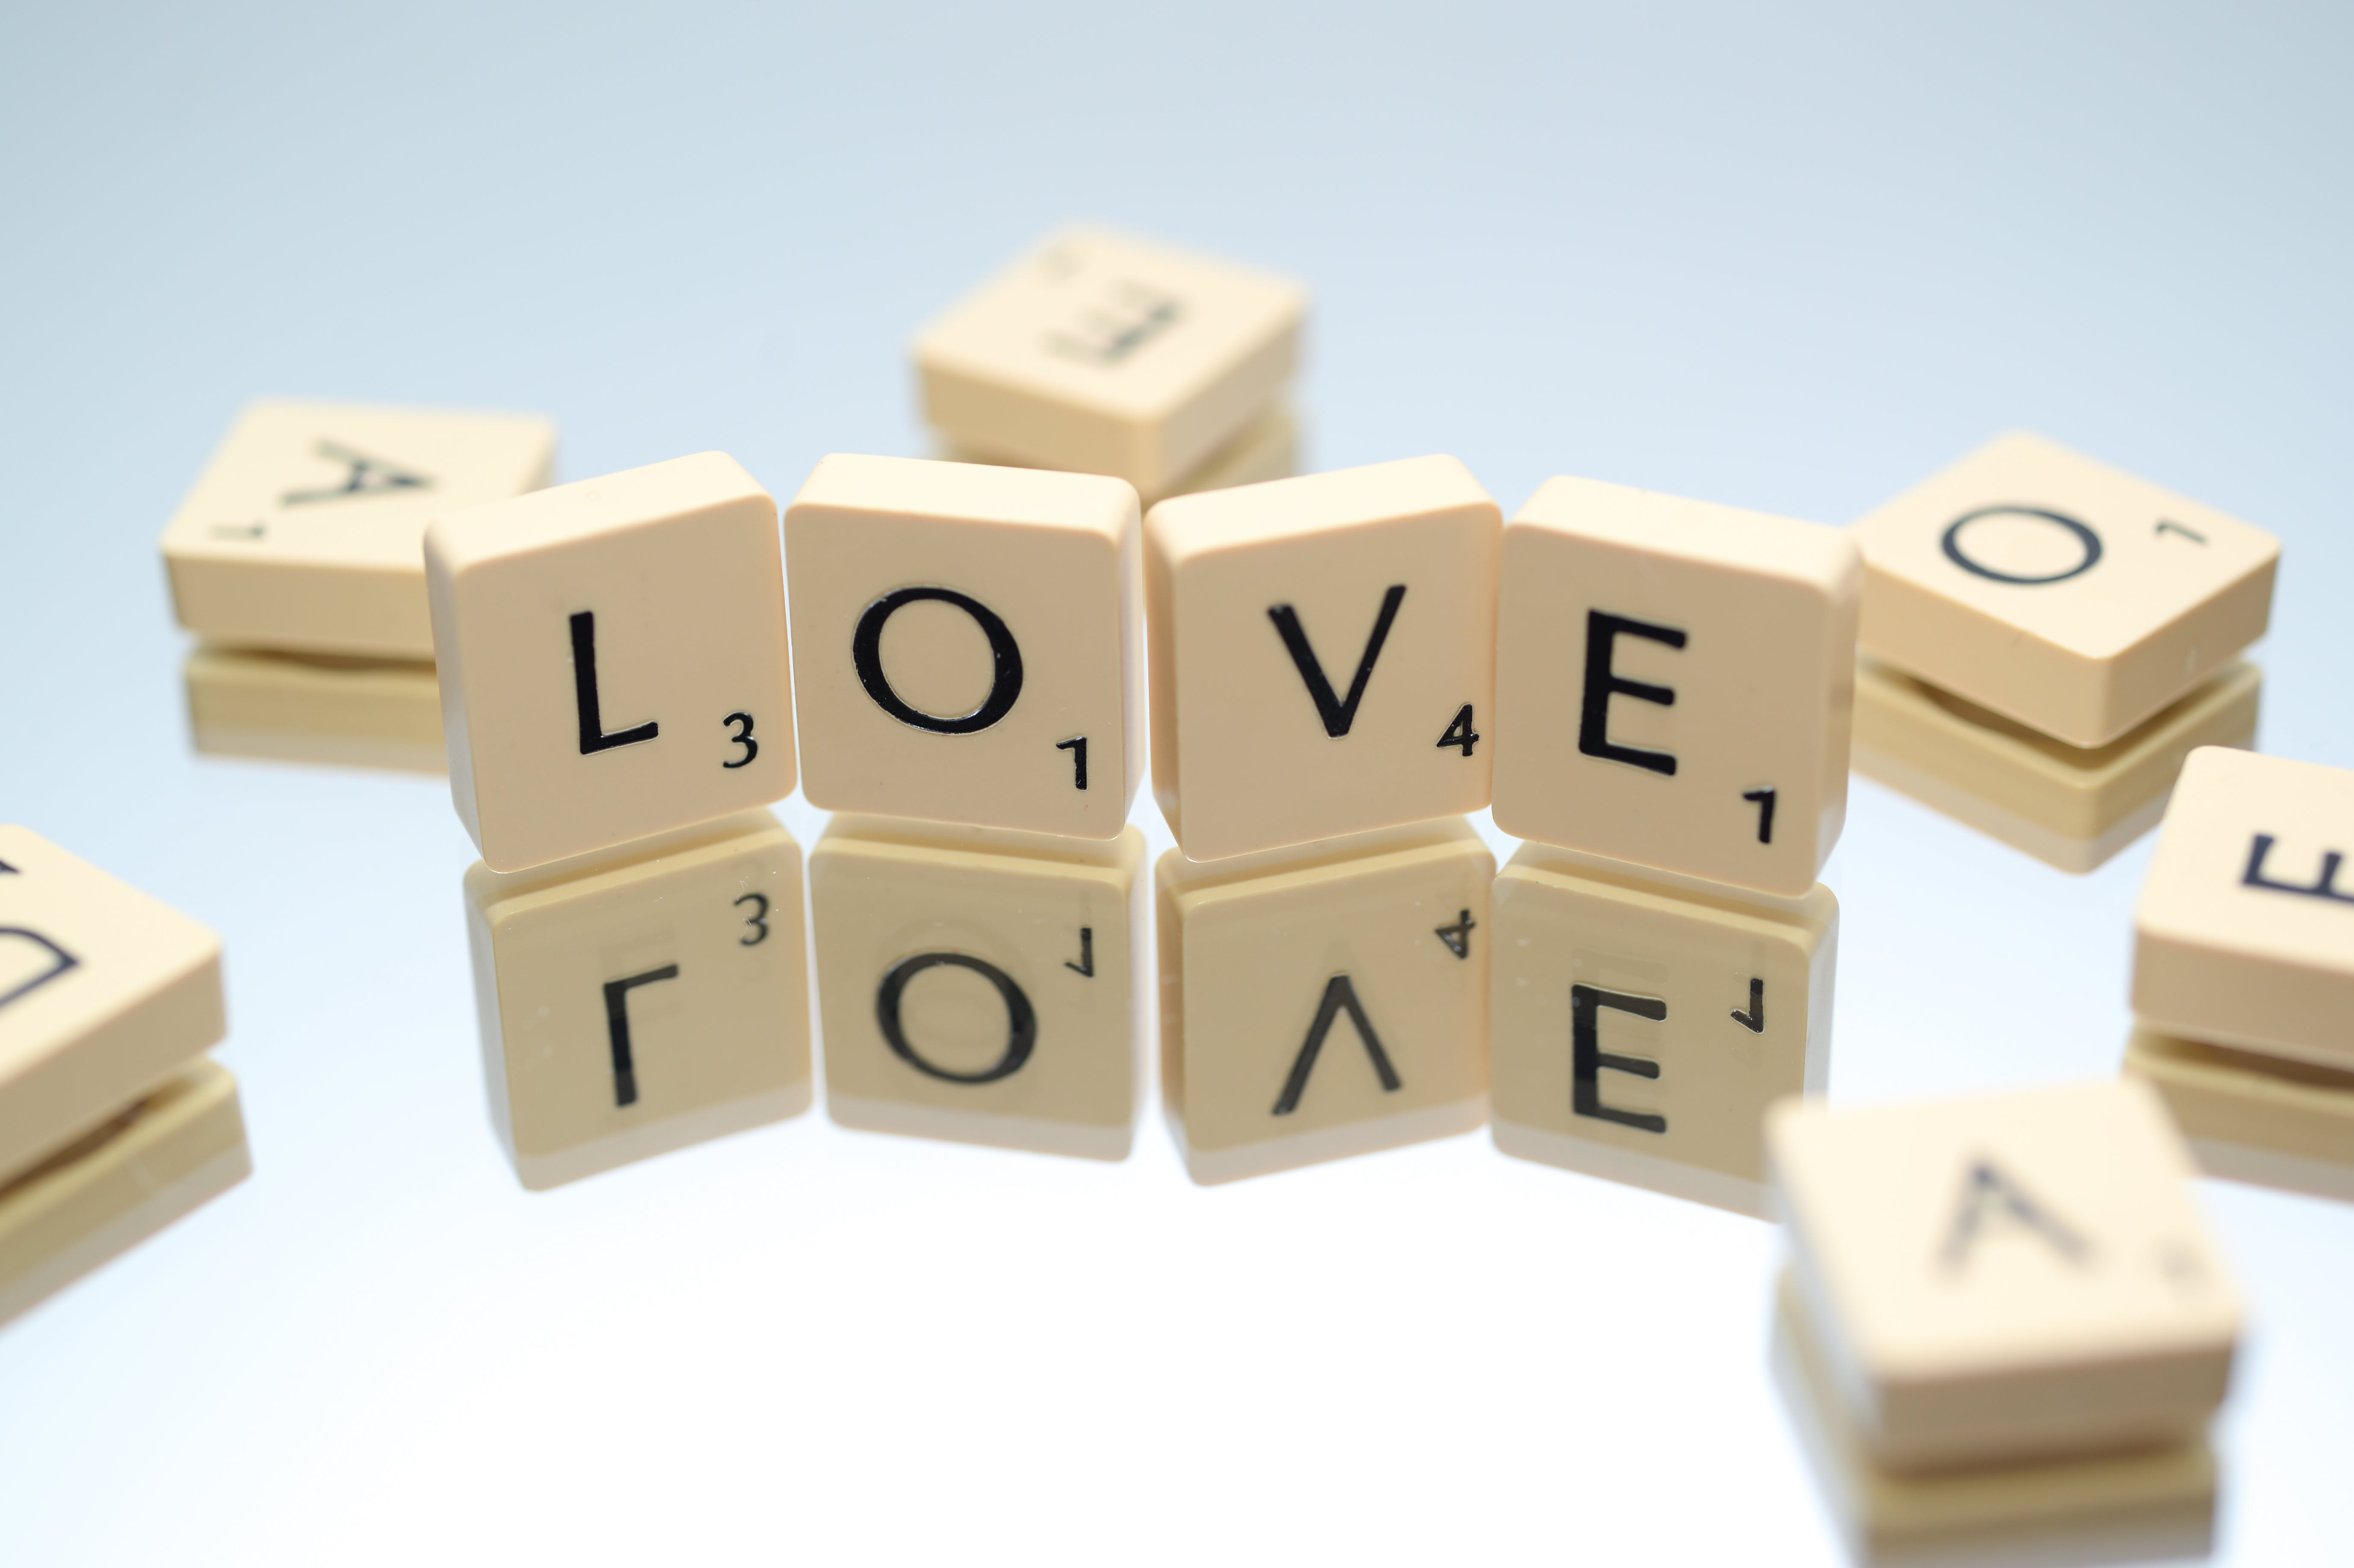 Scrabble Letters Form Love